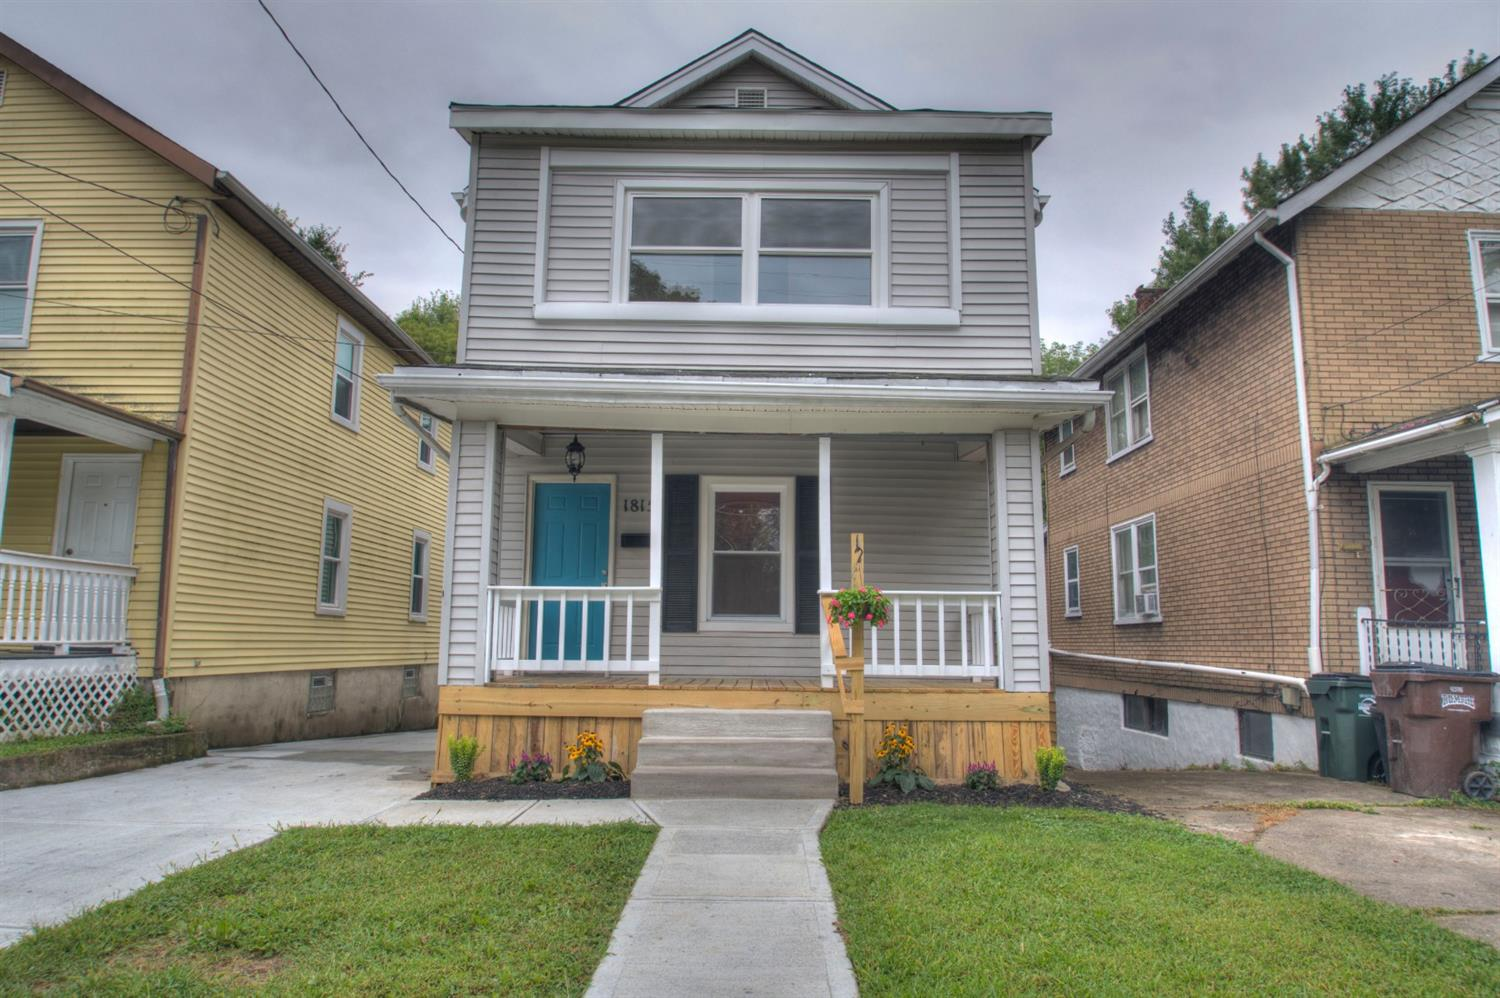 Property for sale at 1815 Maple Avenue, Norwood,  Ohio 45212